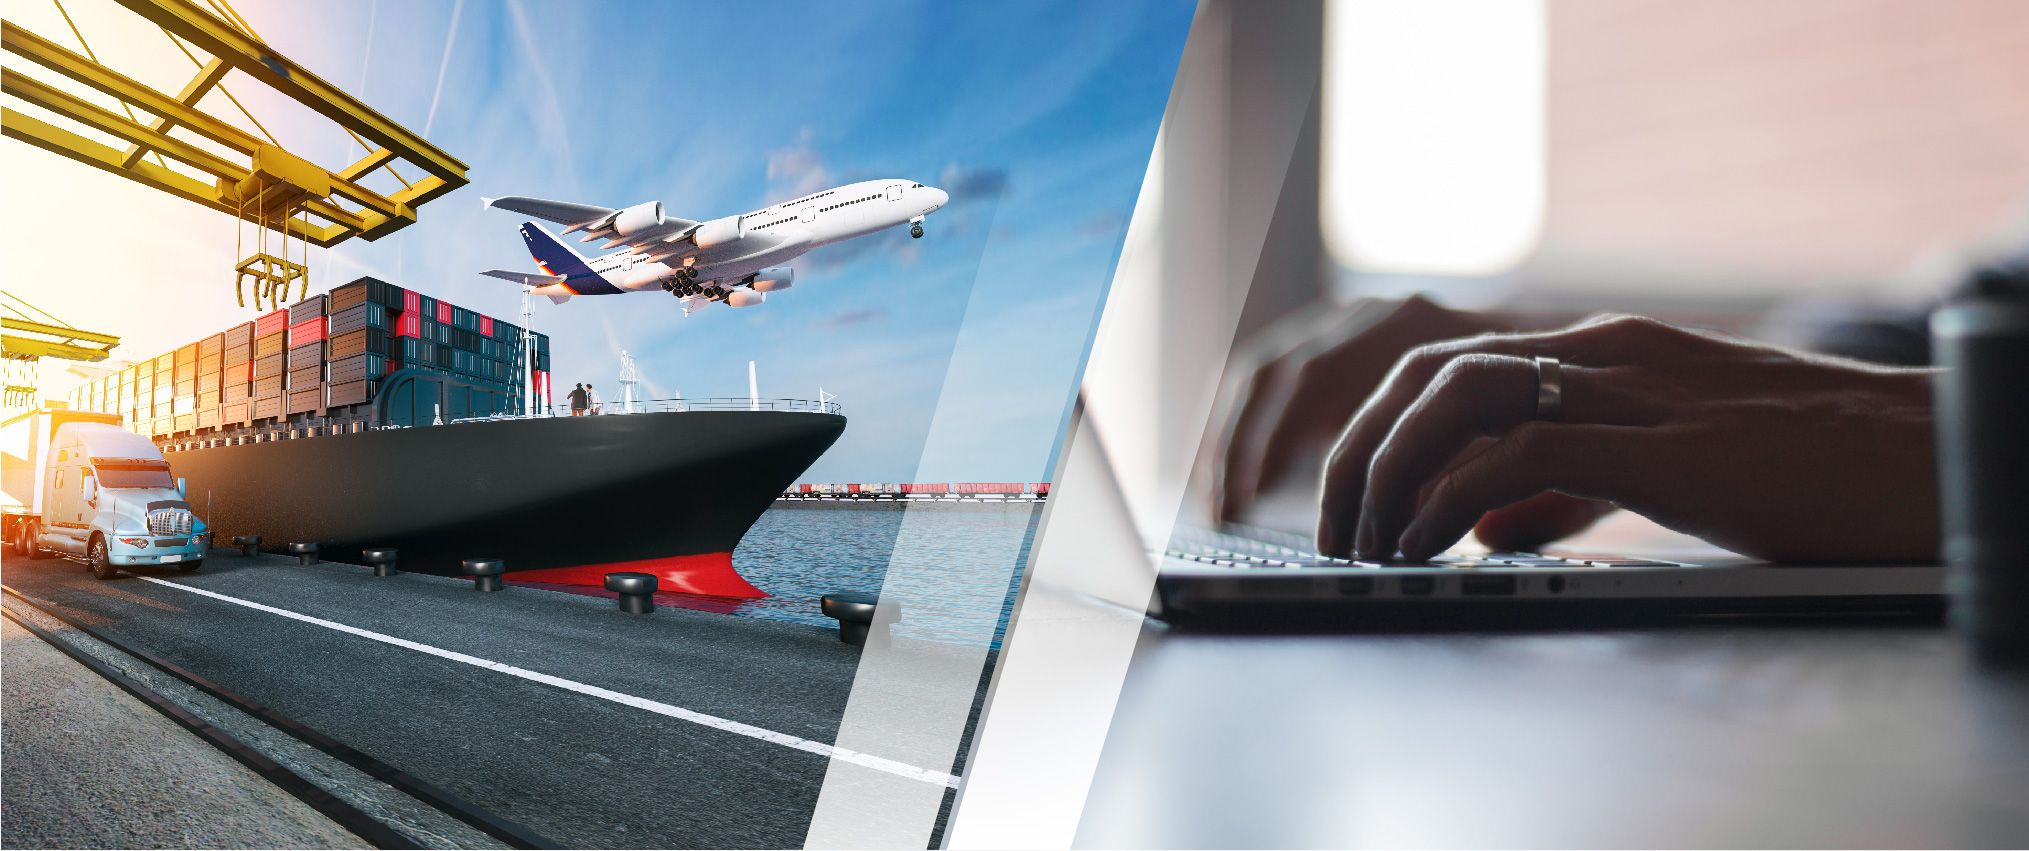 logistics business outsourcing back office process